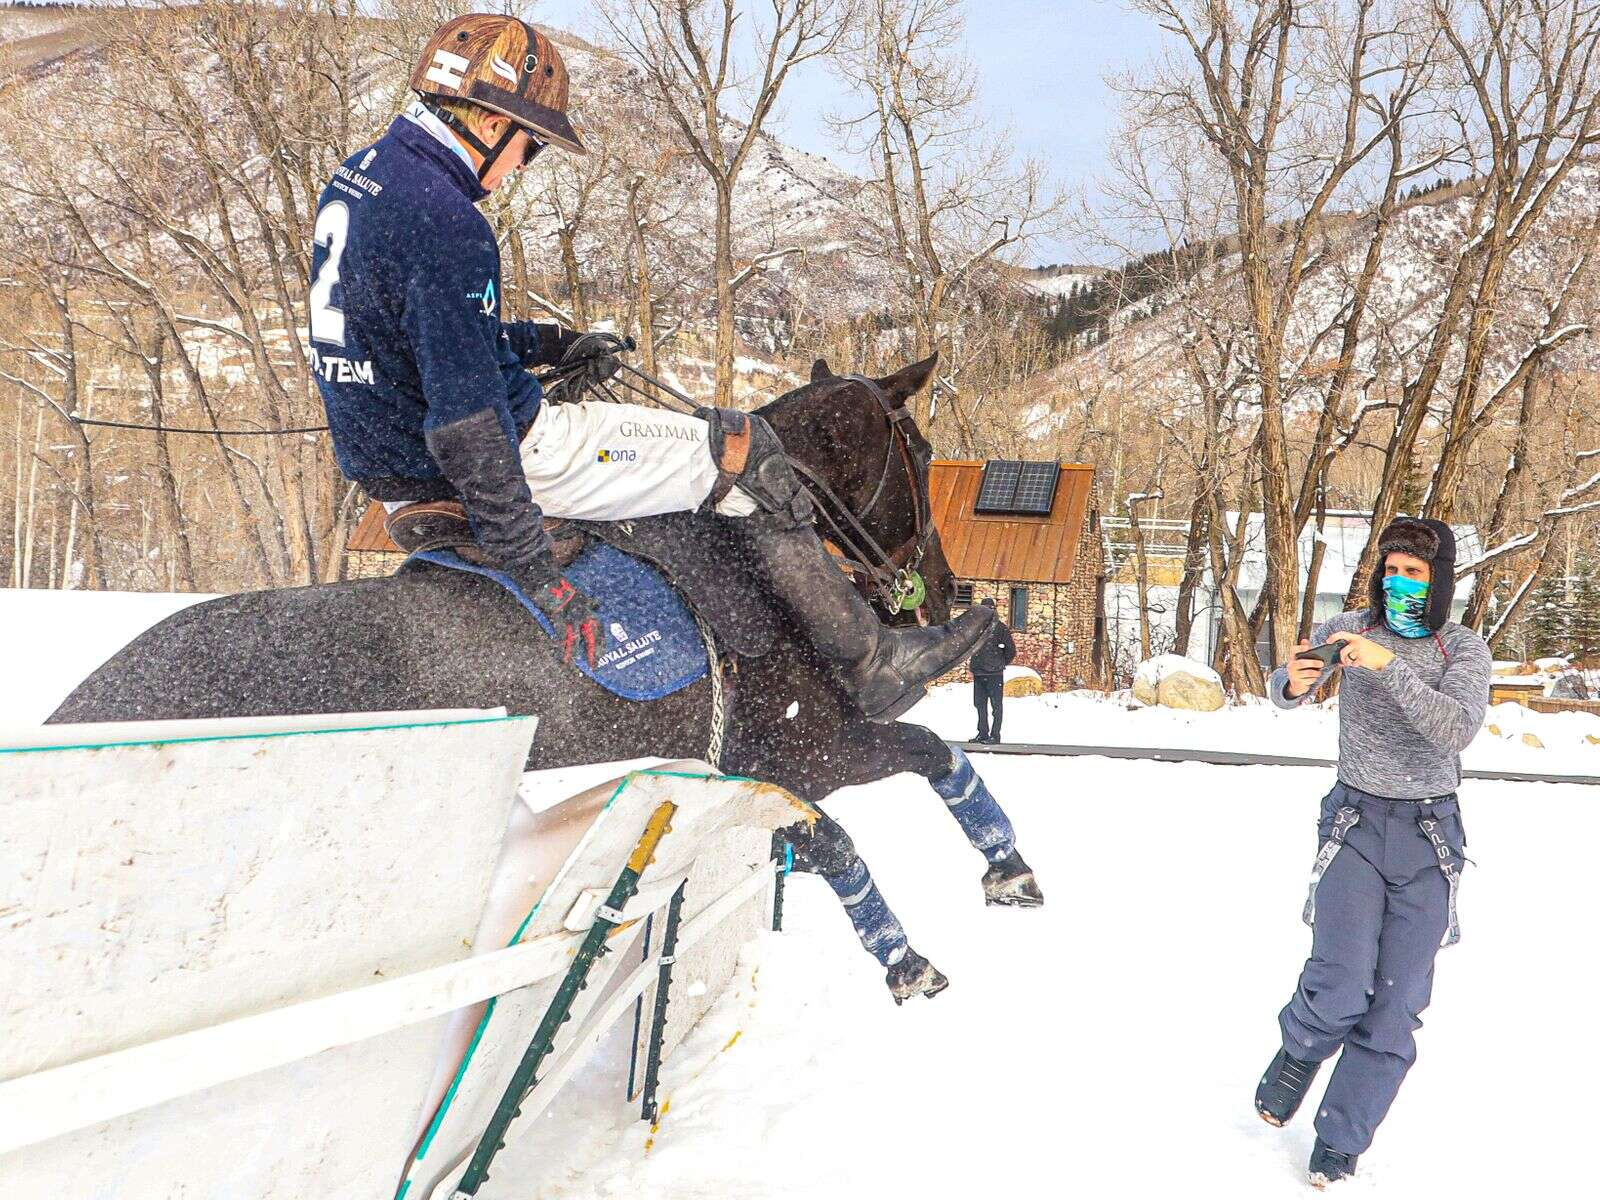 California's Jason Crowder, a professional polo player, and his horse crash through the fence as a spectator looks to get out of the way during the final of the World Snow Polo Championship on Sunday, Dec. 20, 2020, at Rio Grande Park in Aspen. Crowder, playing for Royal Salute, the horse and the spectator were unharmed, although there was a short delay to fix the wall. Royal Salute lost to World Polo League in the championship game, 11-10 in a shootout. (Photo by Austin Colbert/The Aspen Times)